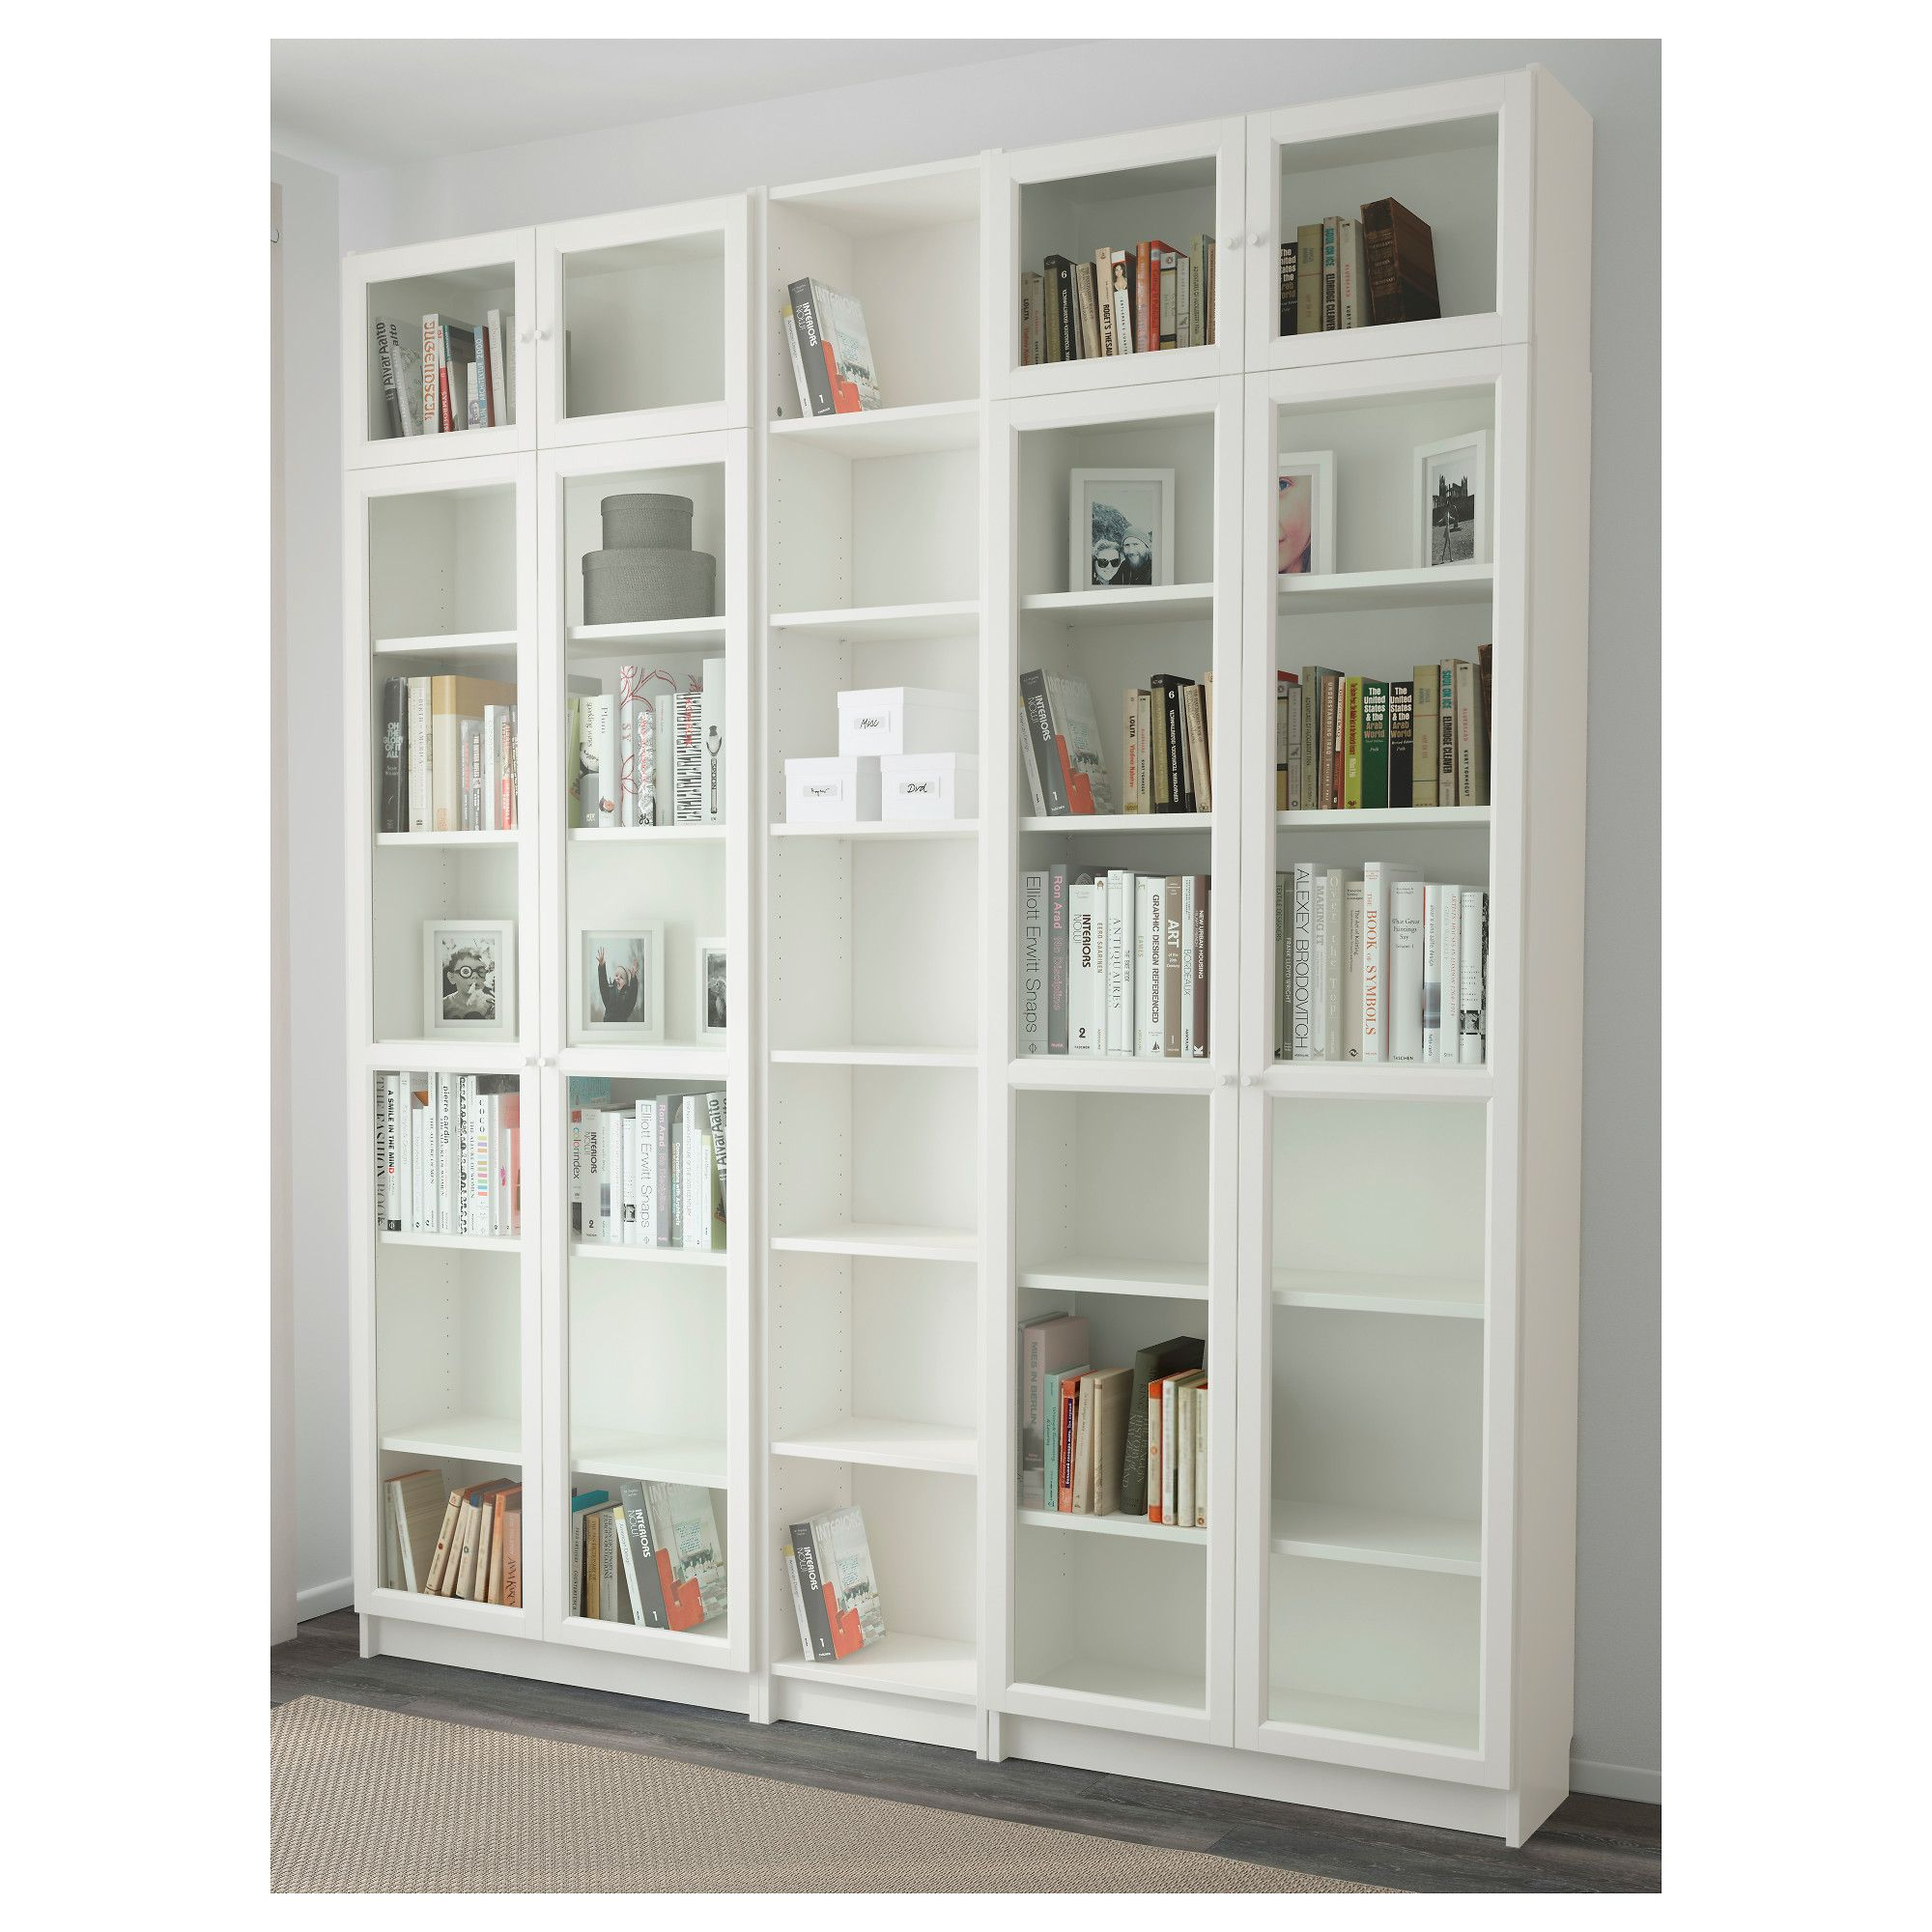 billy oxberg bookcase white 200 x 237 x 30 cm mieszkanko pinterest tag re salon et maison. Black Bedroom Furniture Sets. Home Design Ideas